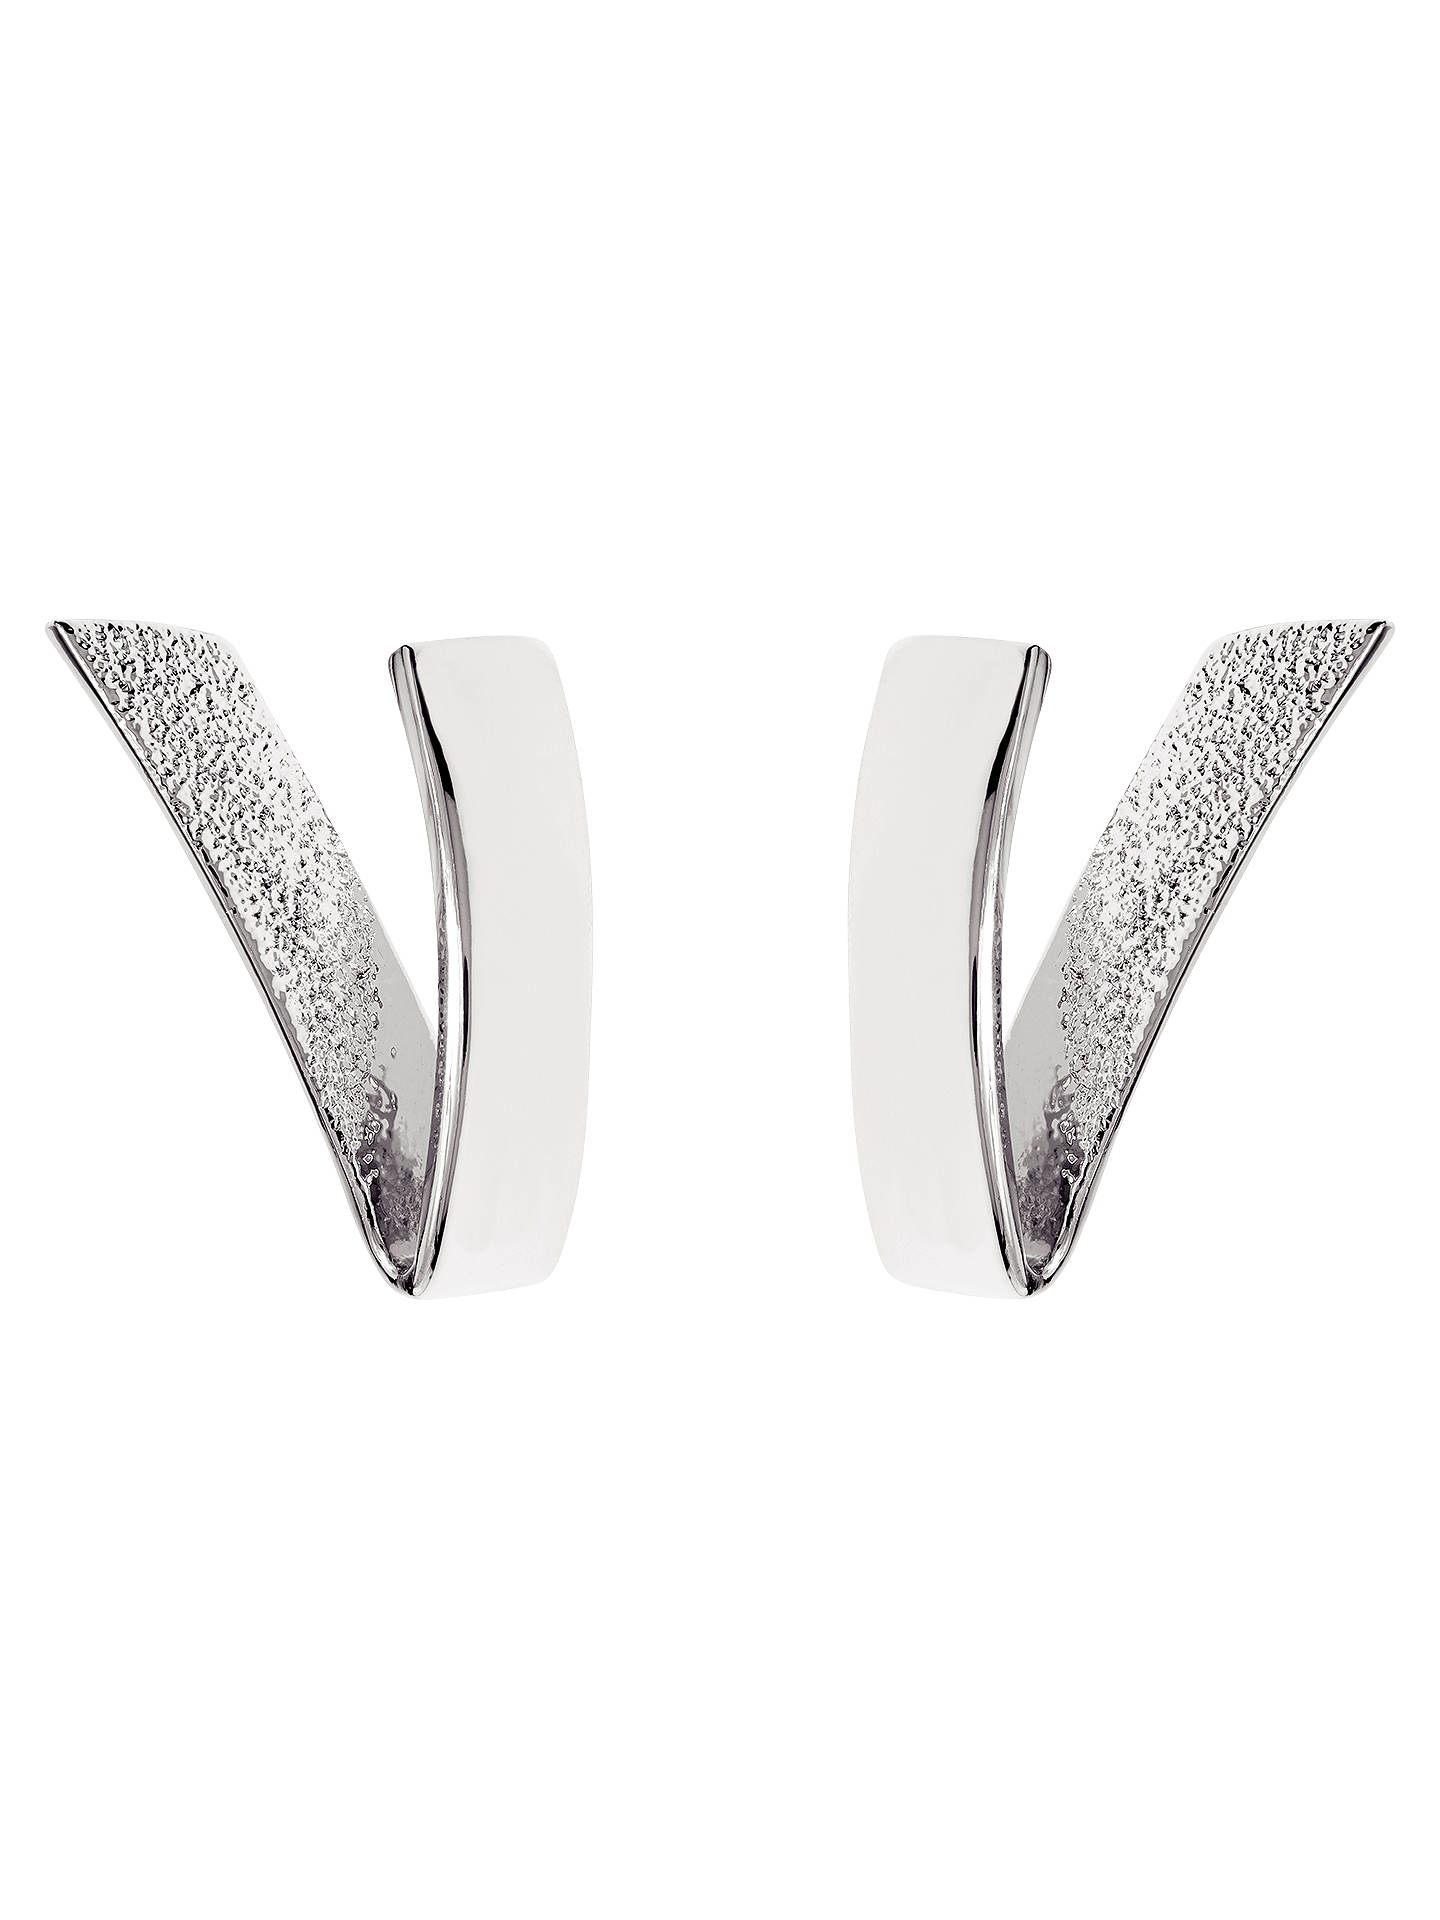 1debc90b417e0 Karen Millen Folded Stud Earrings, Silver